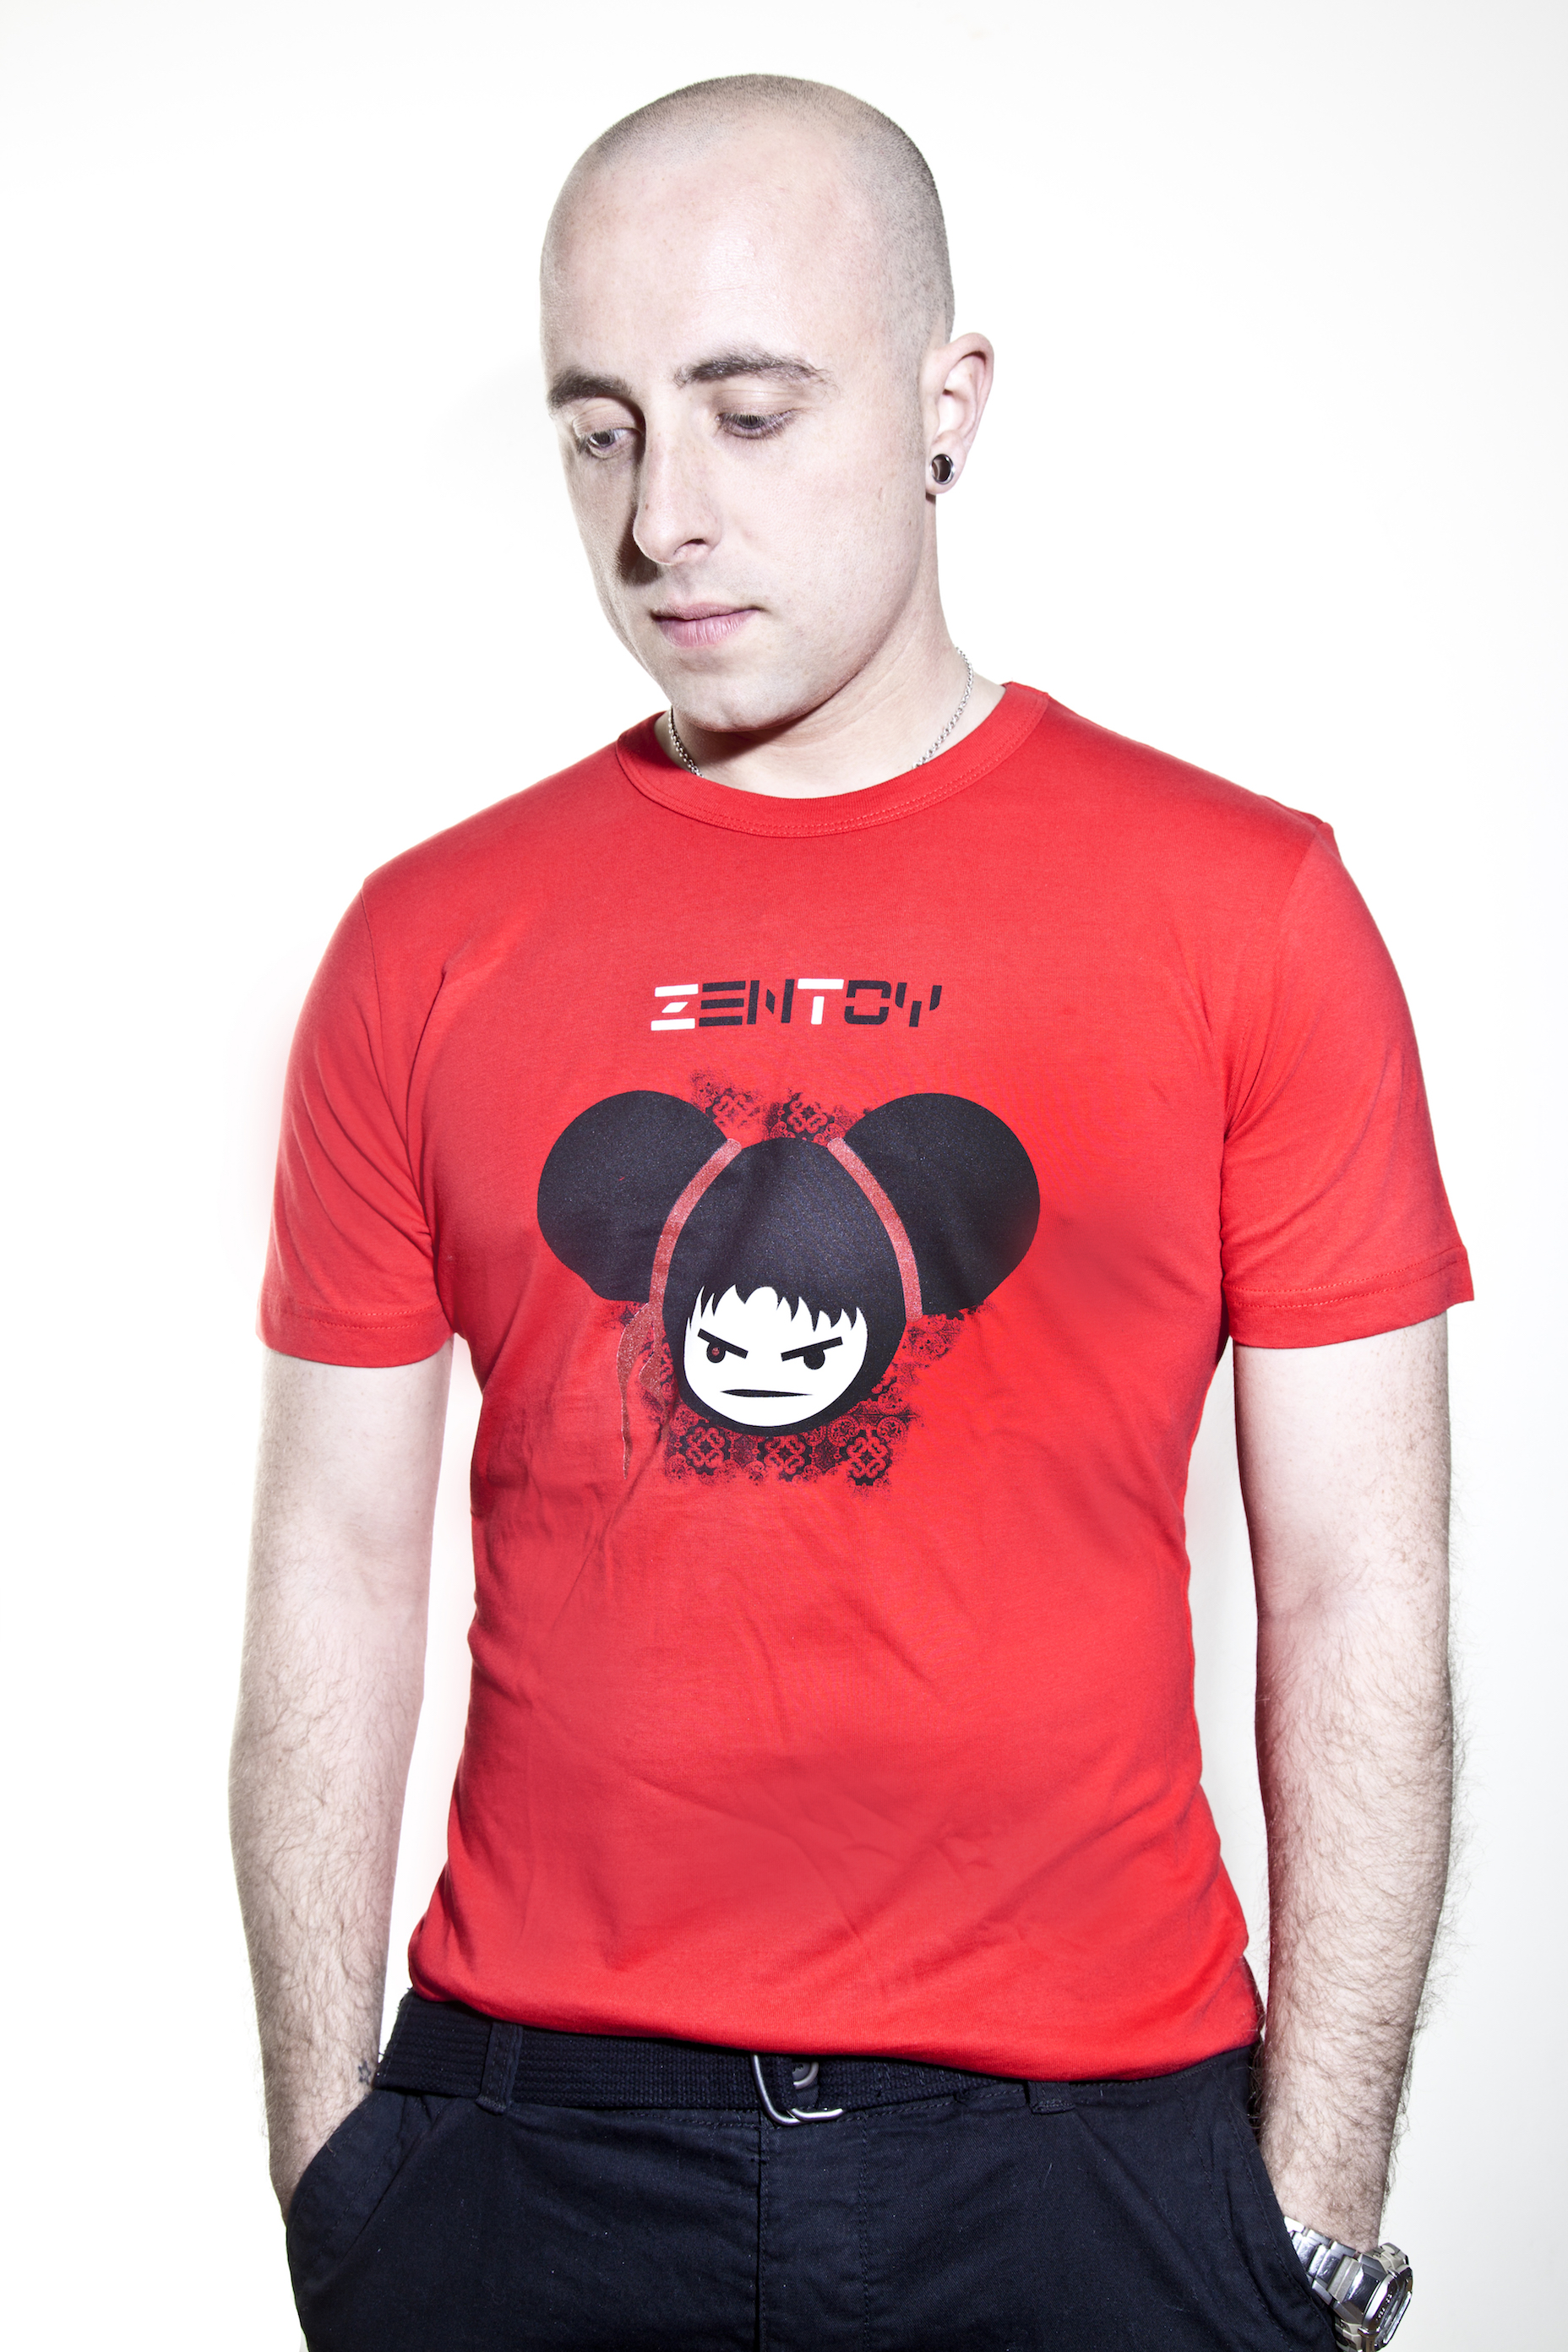 ZenToy Boy T-Shirt